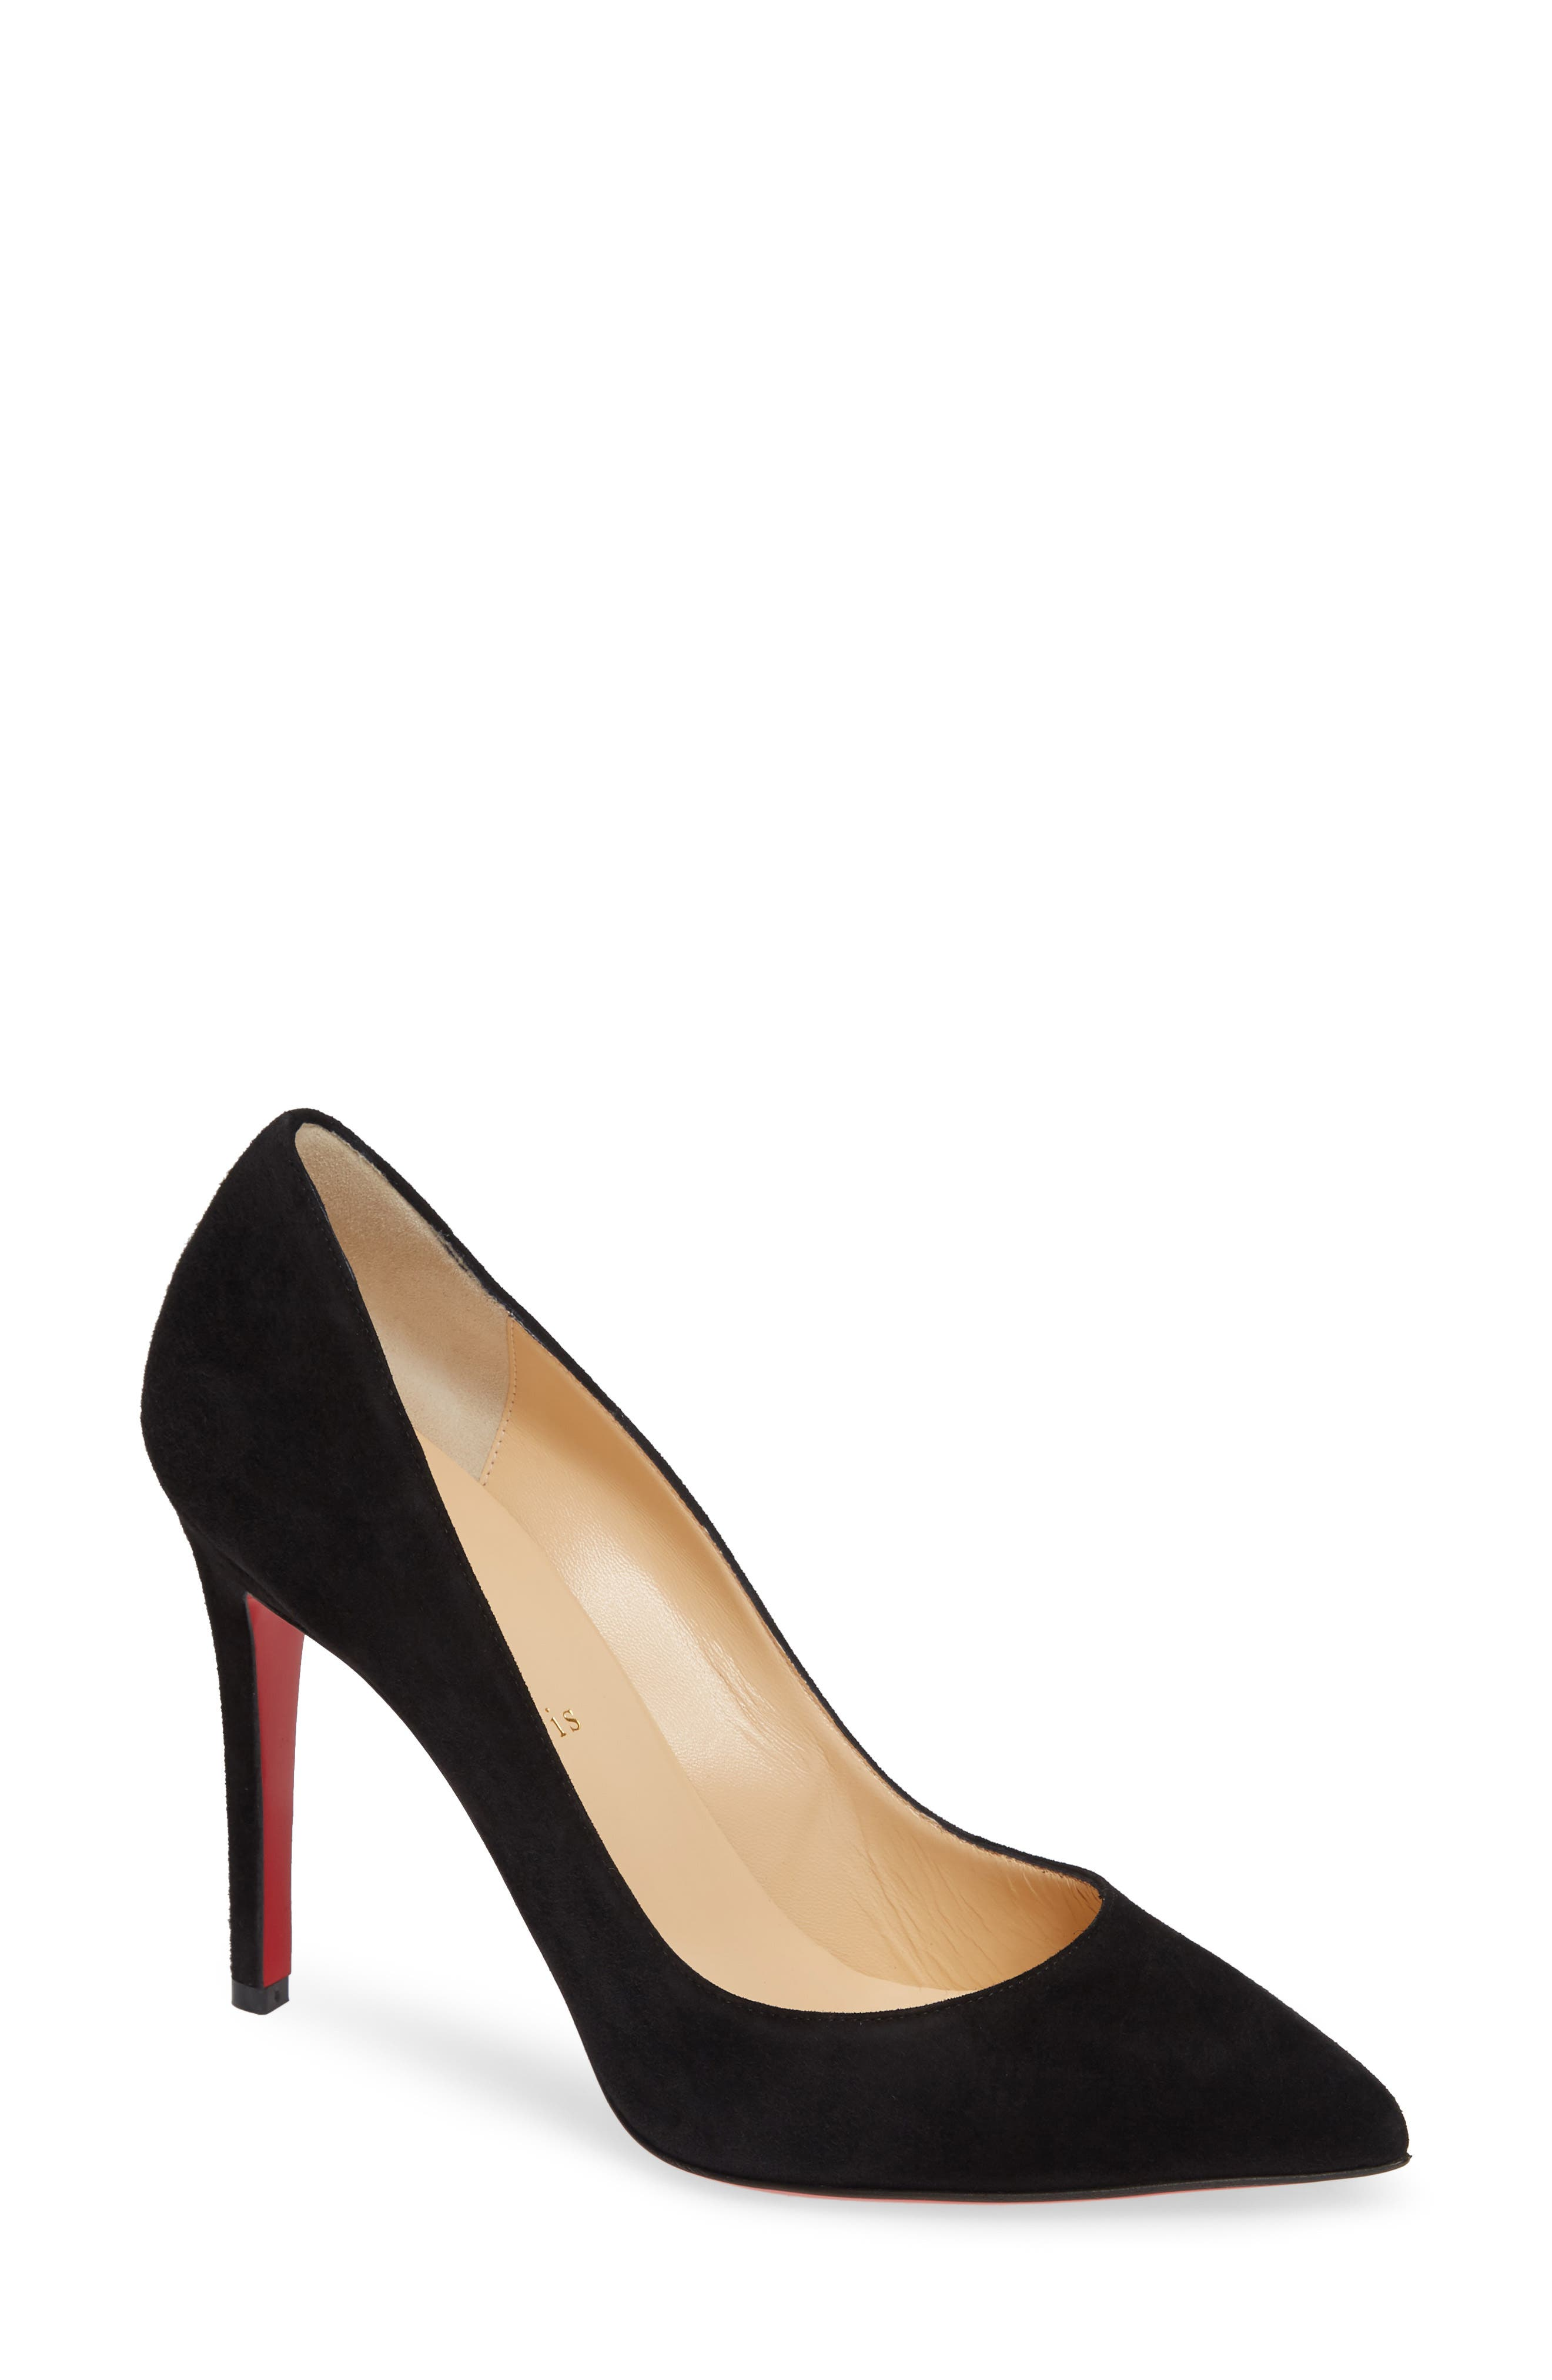 Christian Louboutin Pigalle Pointy Toe Pump, Black